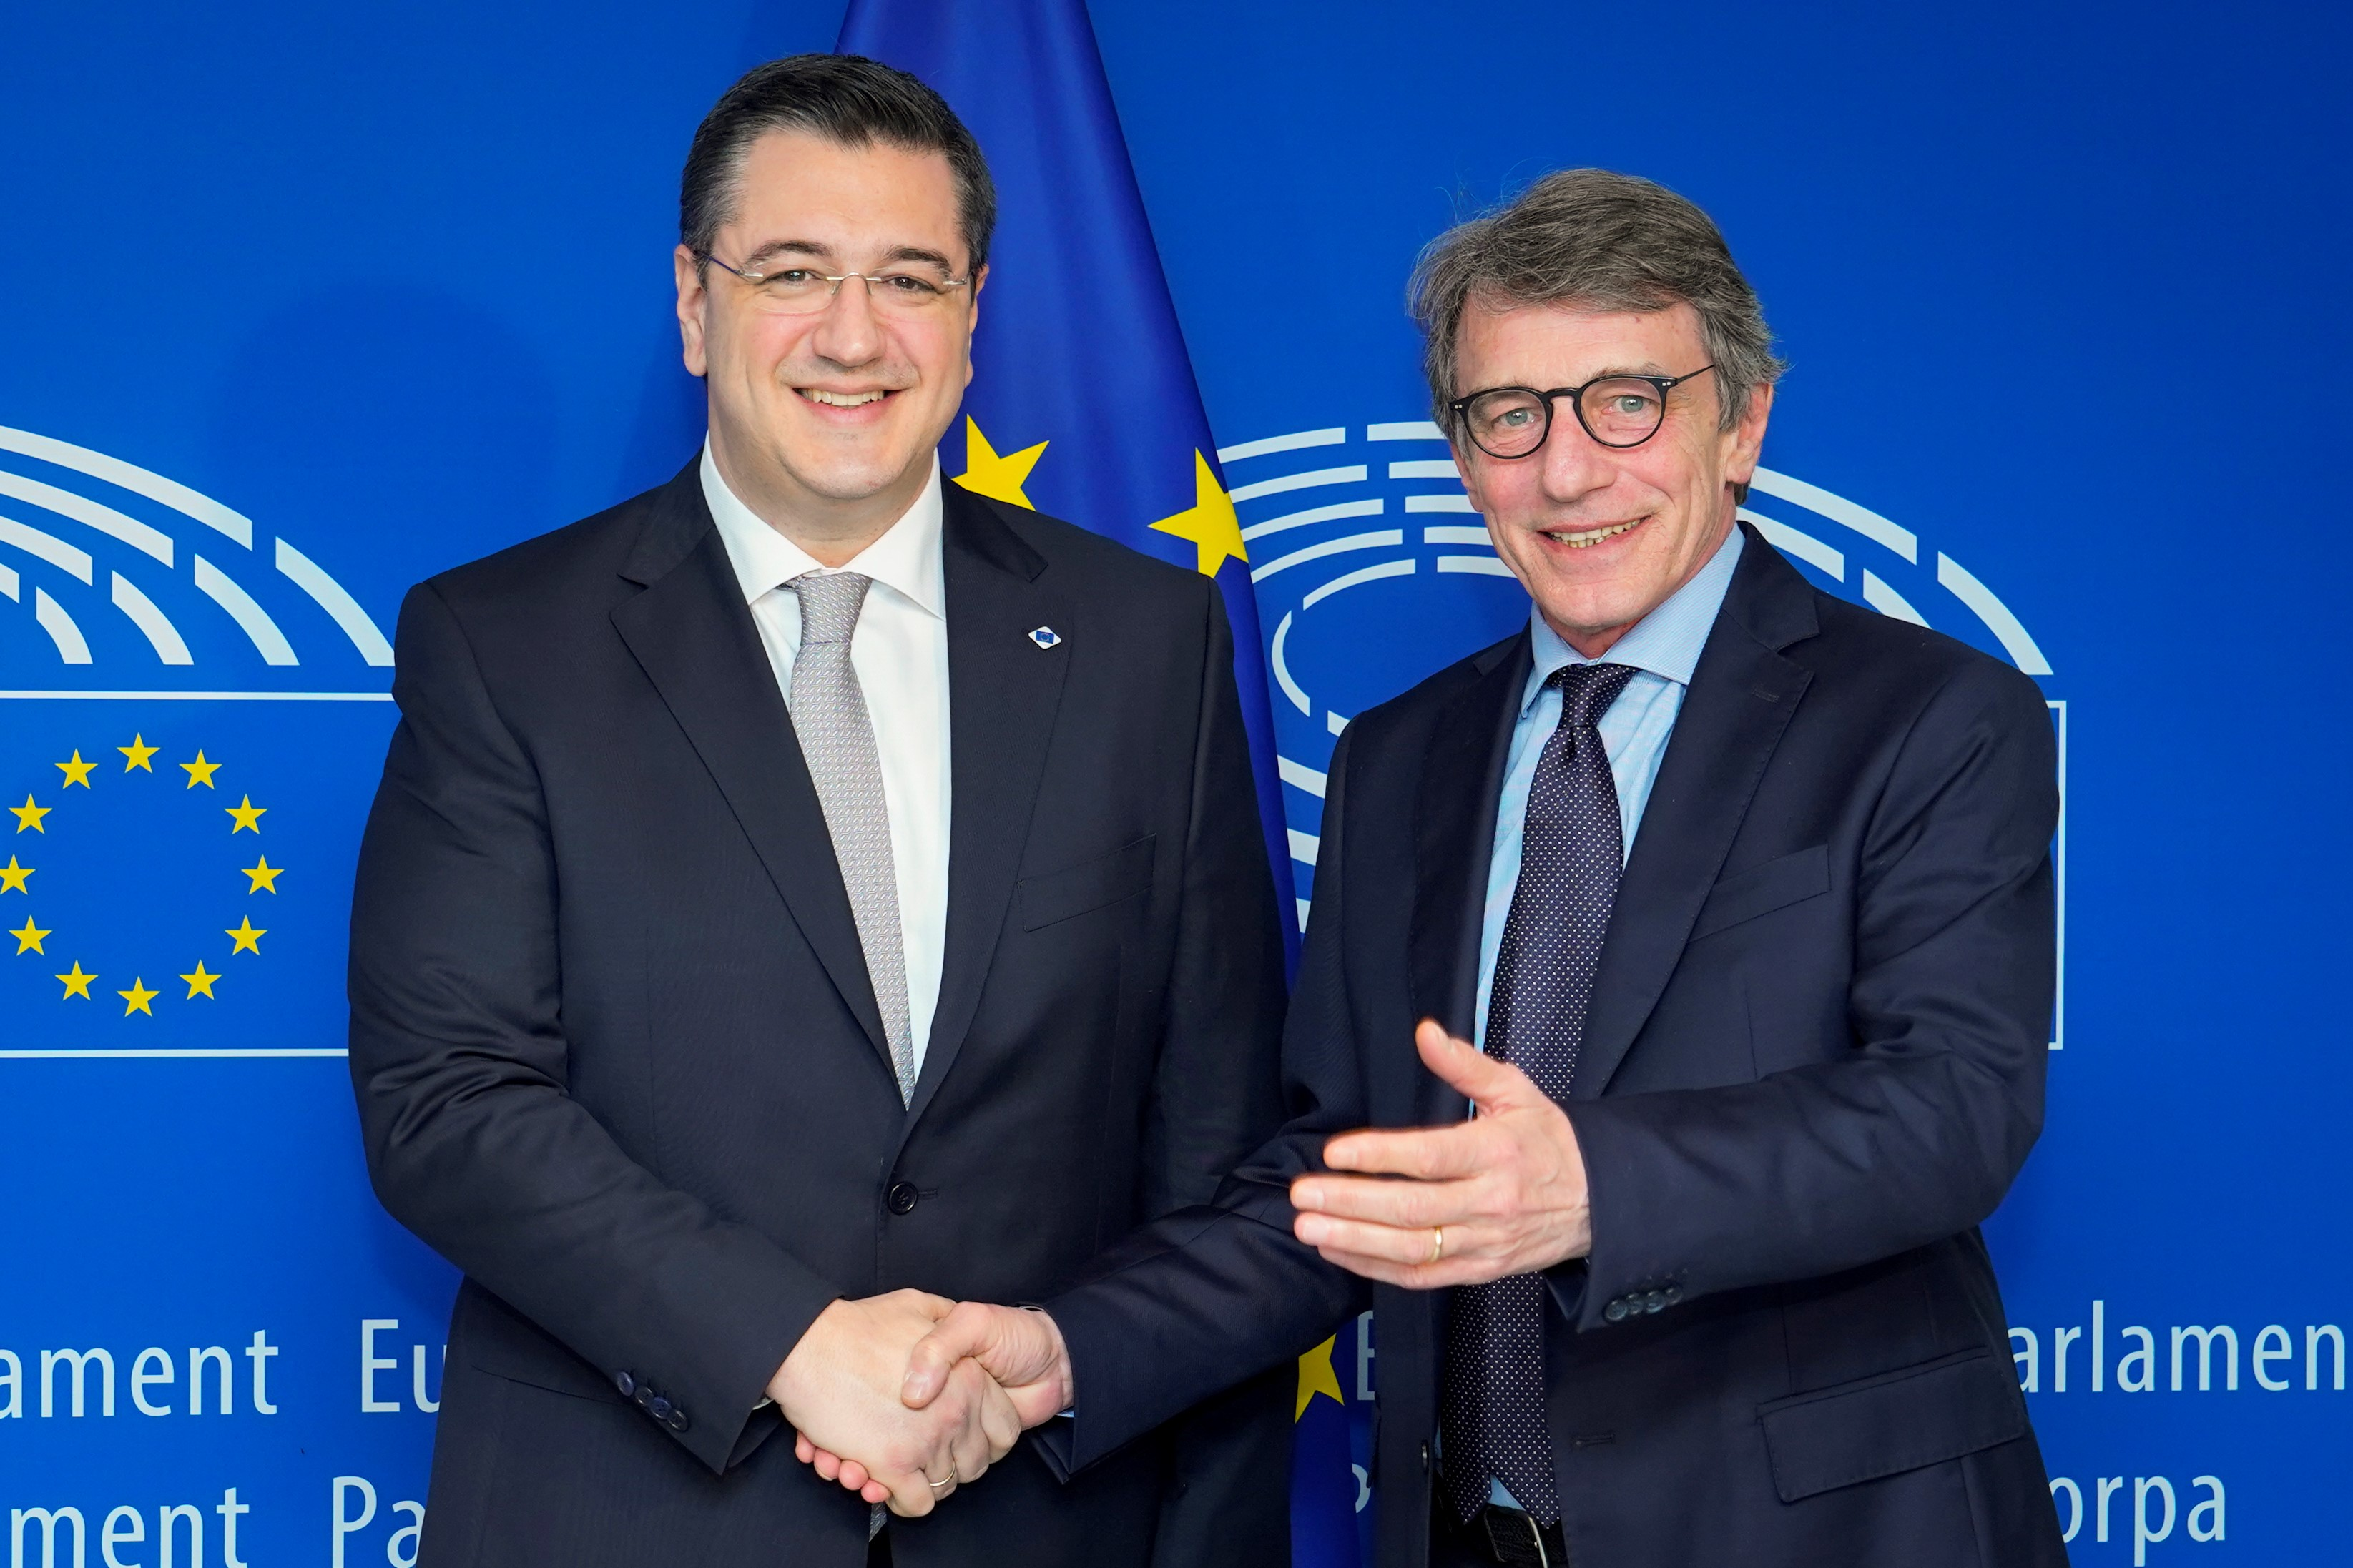 EP and CoR Presidents ask to redouble efforts to address new migration crisis, fight Coronavirus, adopt an ambitious EU budget and strengthen European democracy